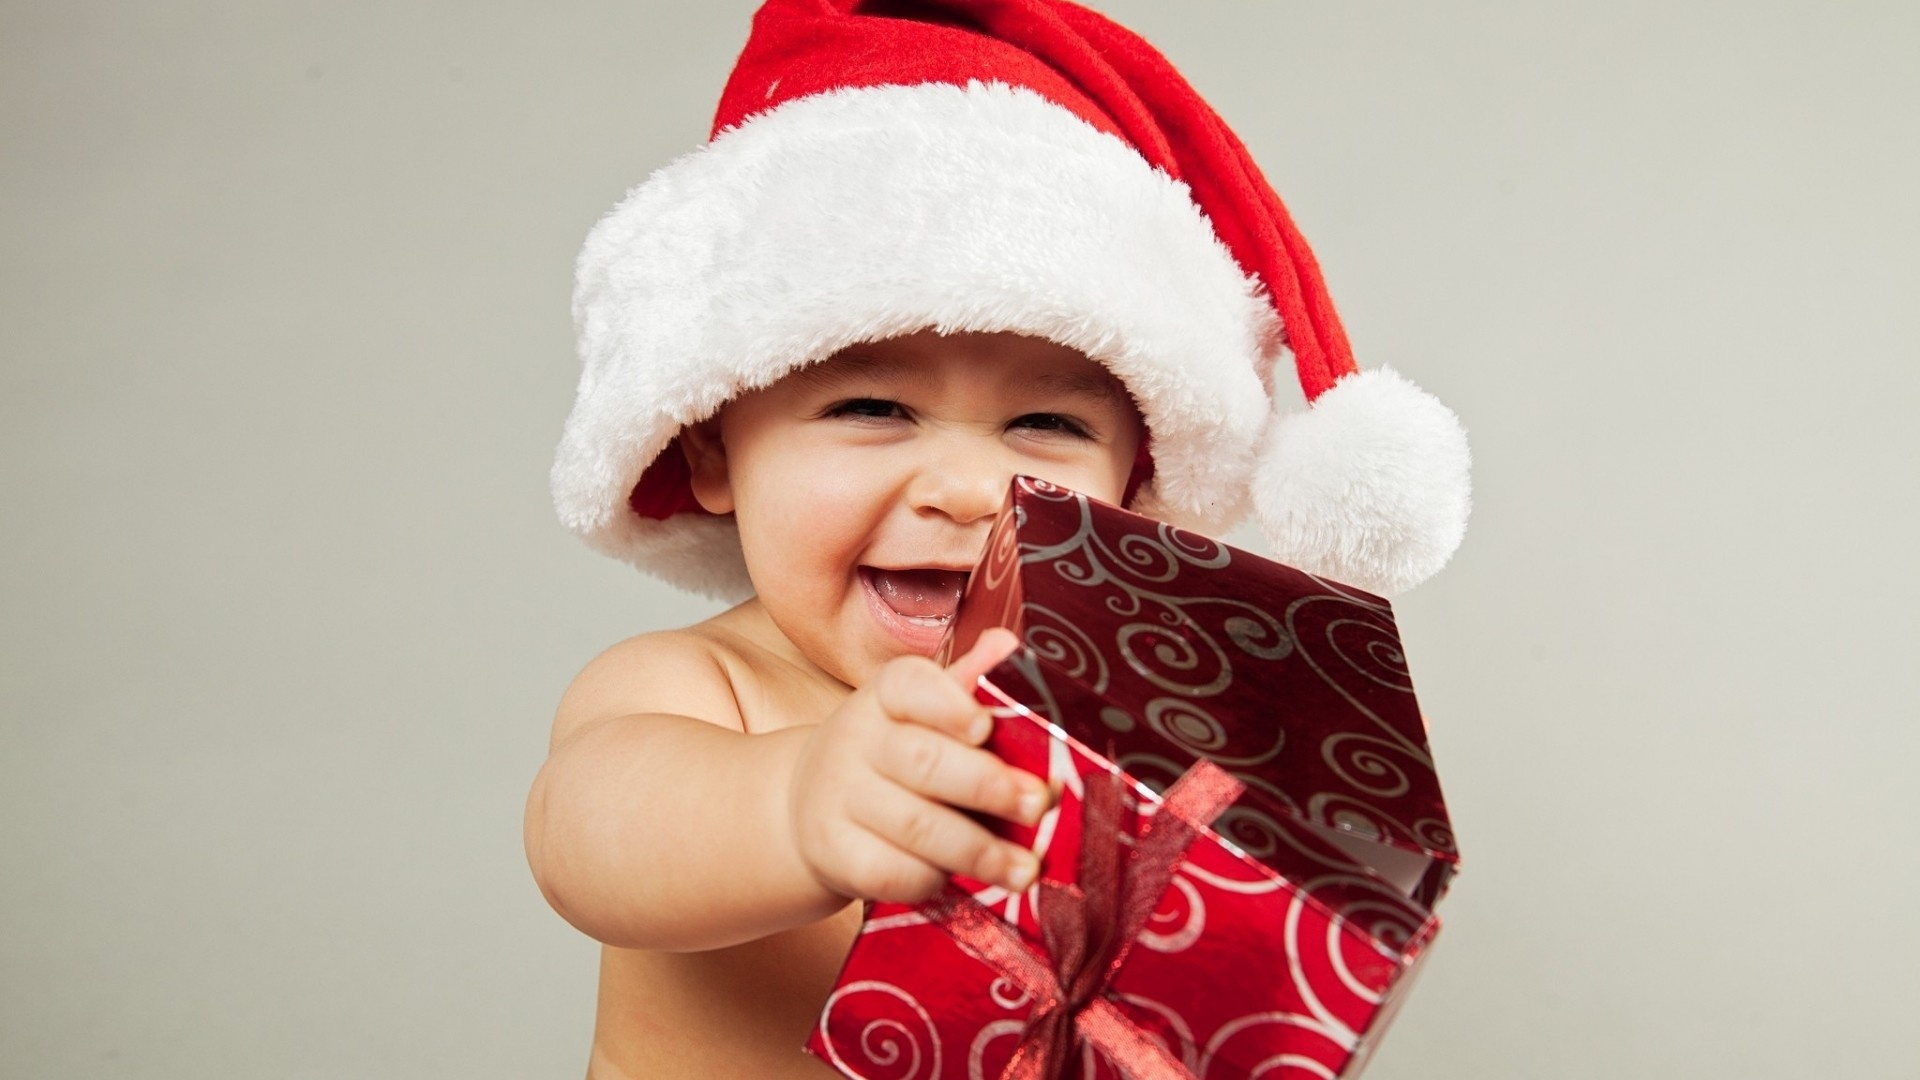 Santa claus new year baby wallpapers 1920x1080 311783 santa claus new year baby voltagebd Image collections